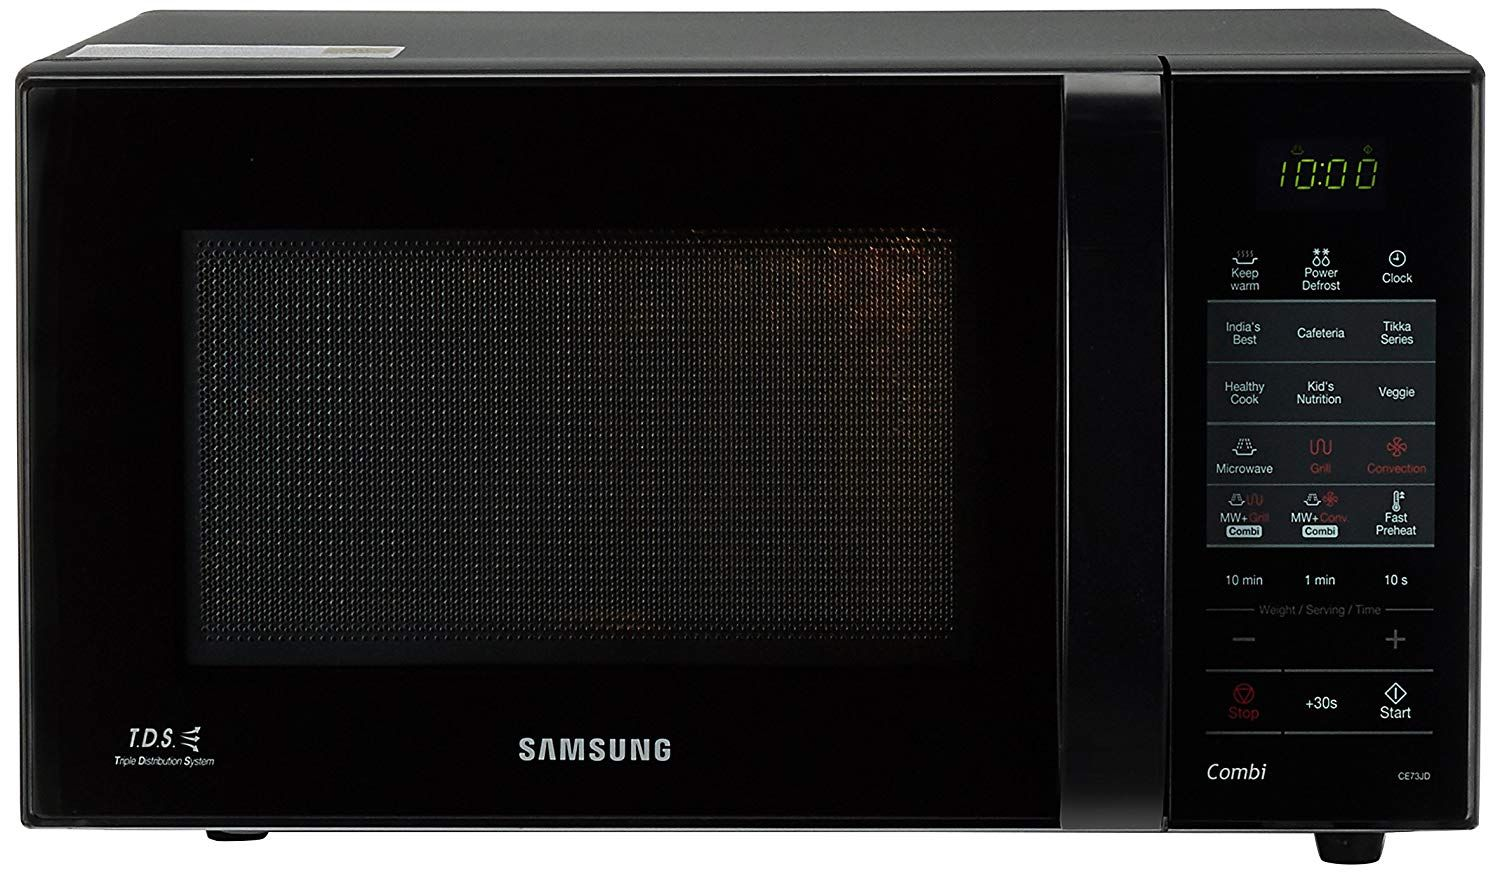 Samsung 21 L Convection Microwave Oven Ce73jd B Xtl Black Microwave Convection Oven Microwave Oven Convection Microwaves